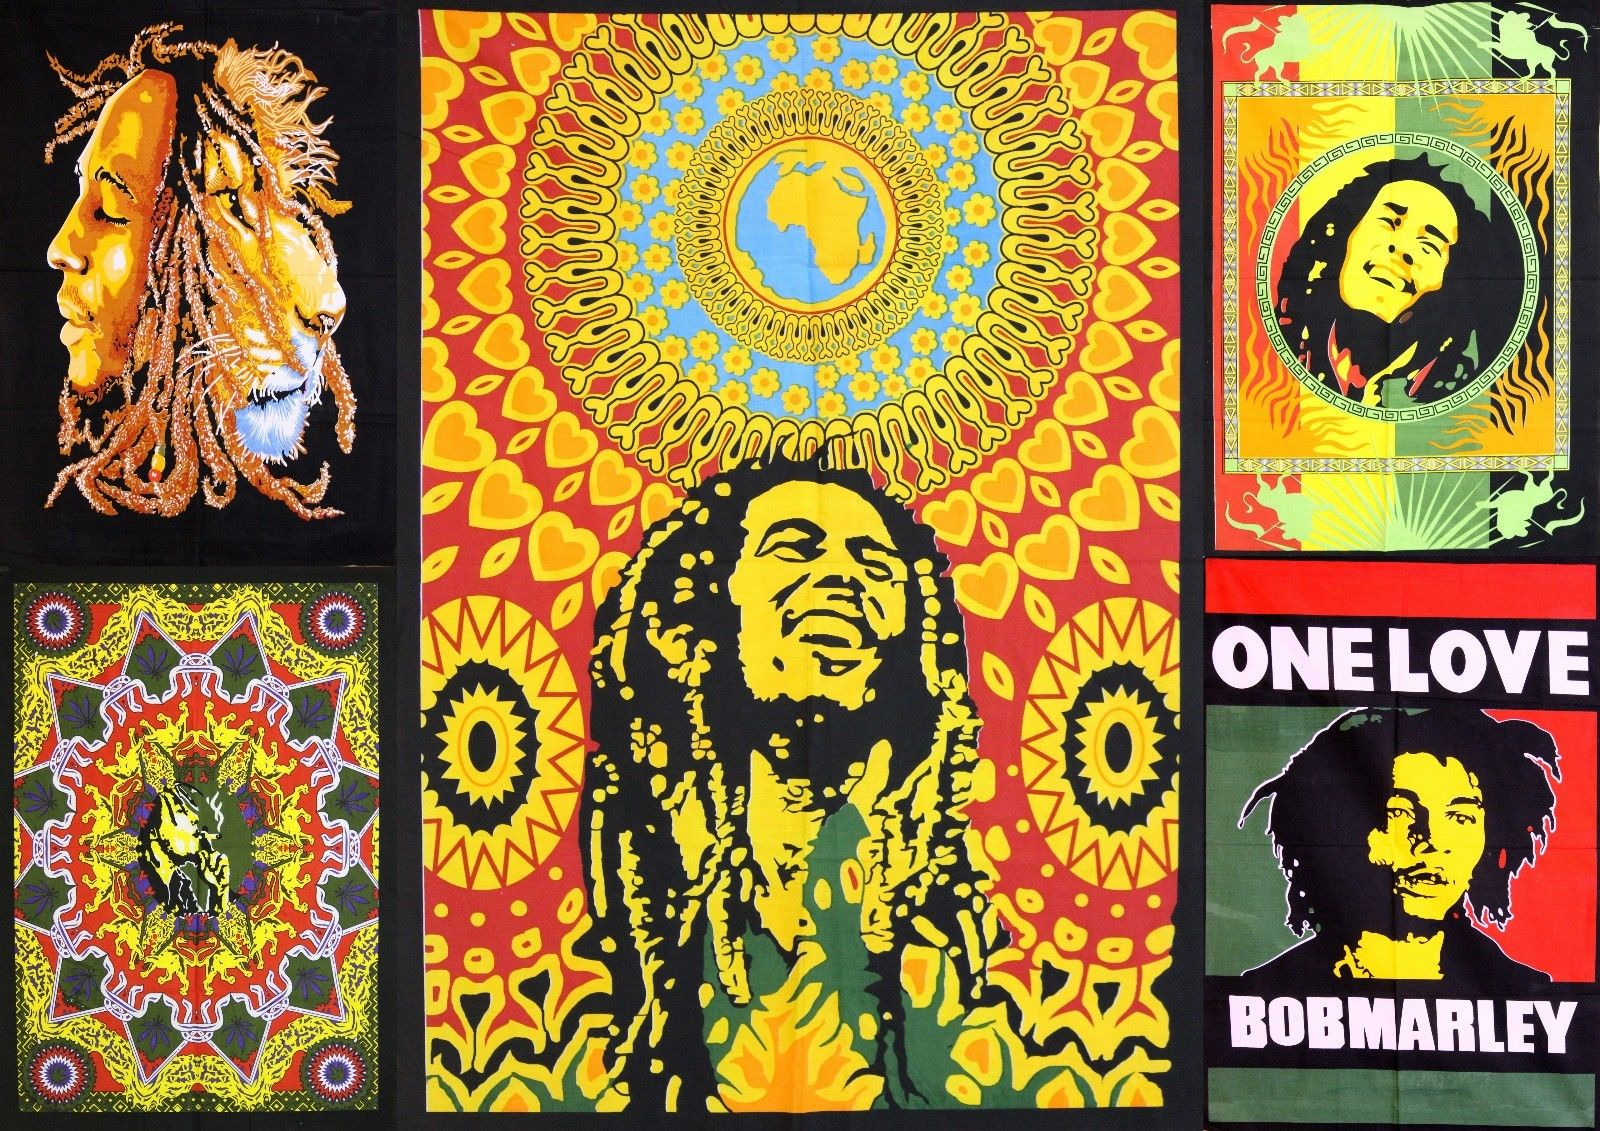 Bob Marley One Love Tapestry Wall Hanging Poster Flag Cotton Decor 4030